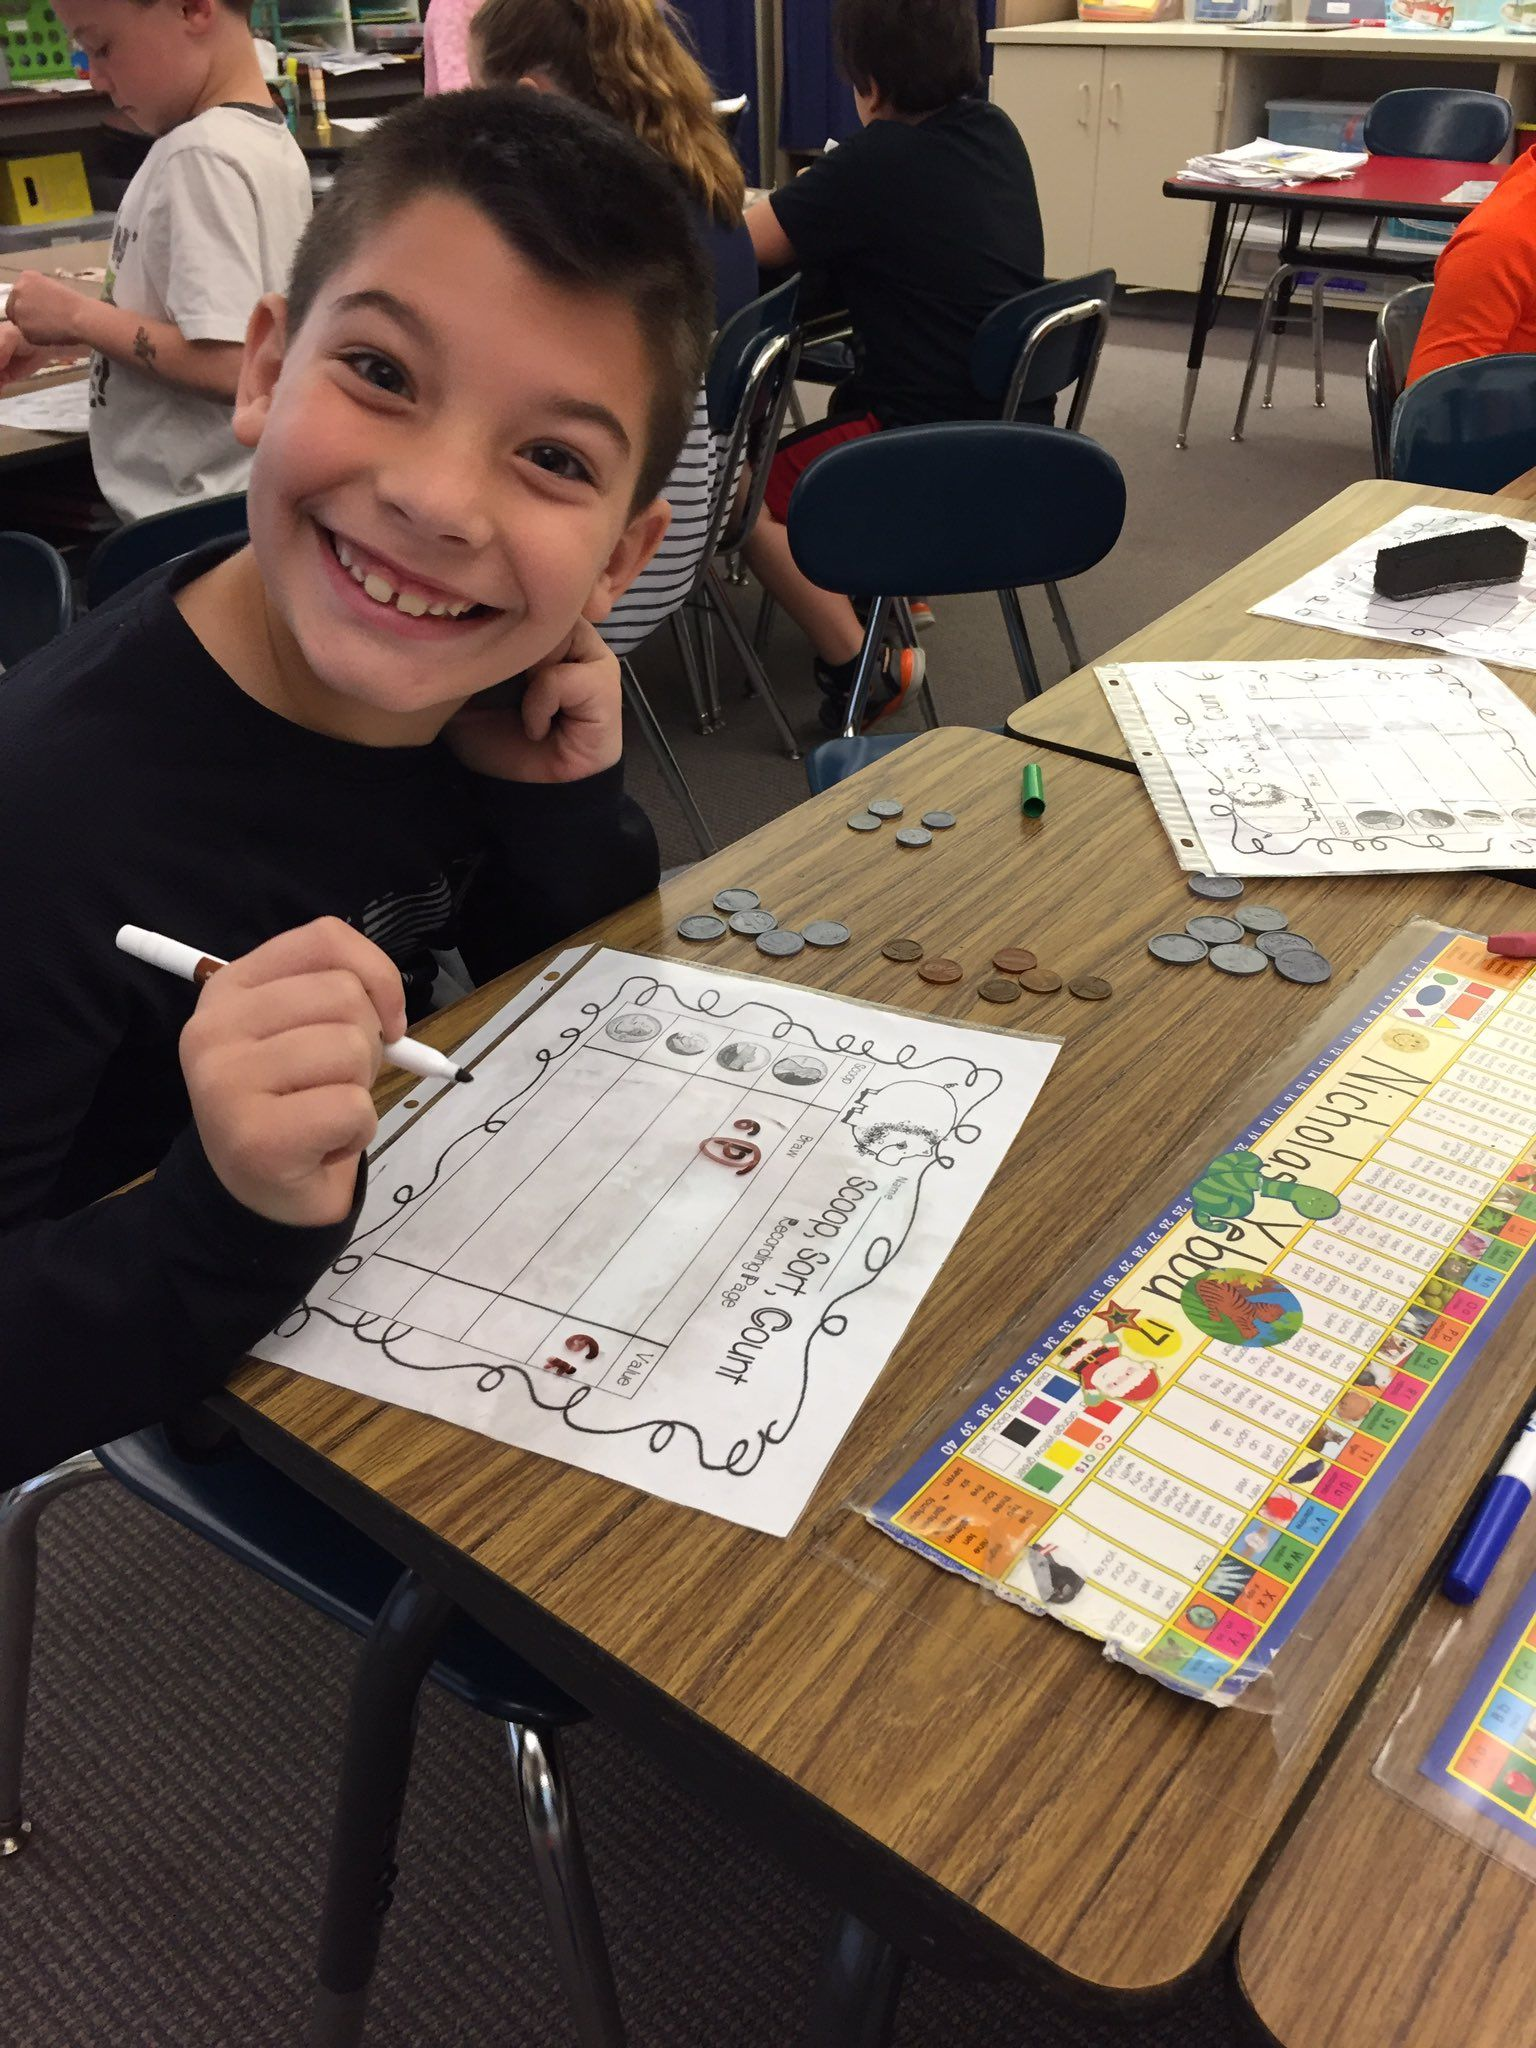 Rt Thomsontimes Sorting Coins And Finding Their Value